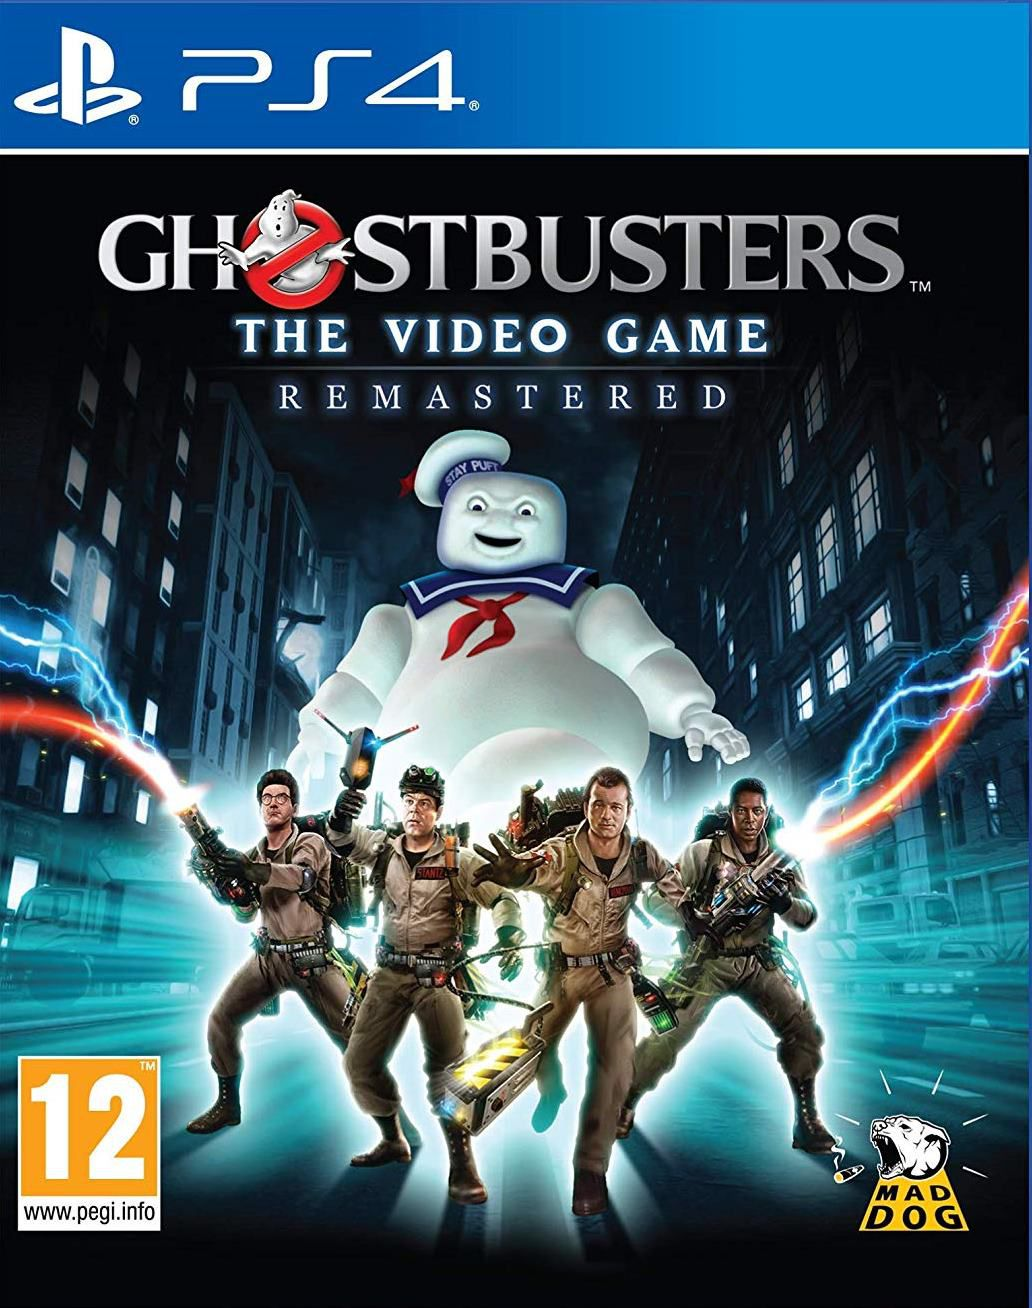 Ghostbusters - The Video Game Remastered  - Joy Games